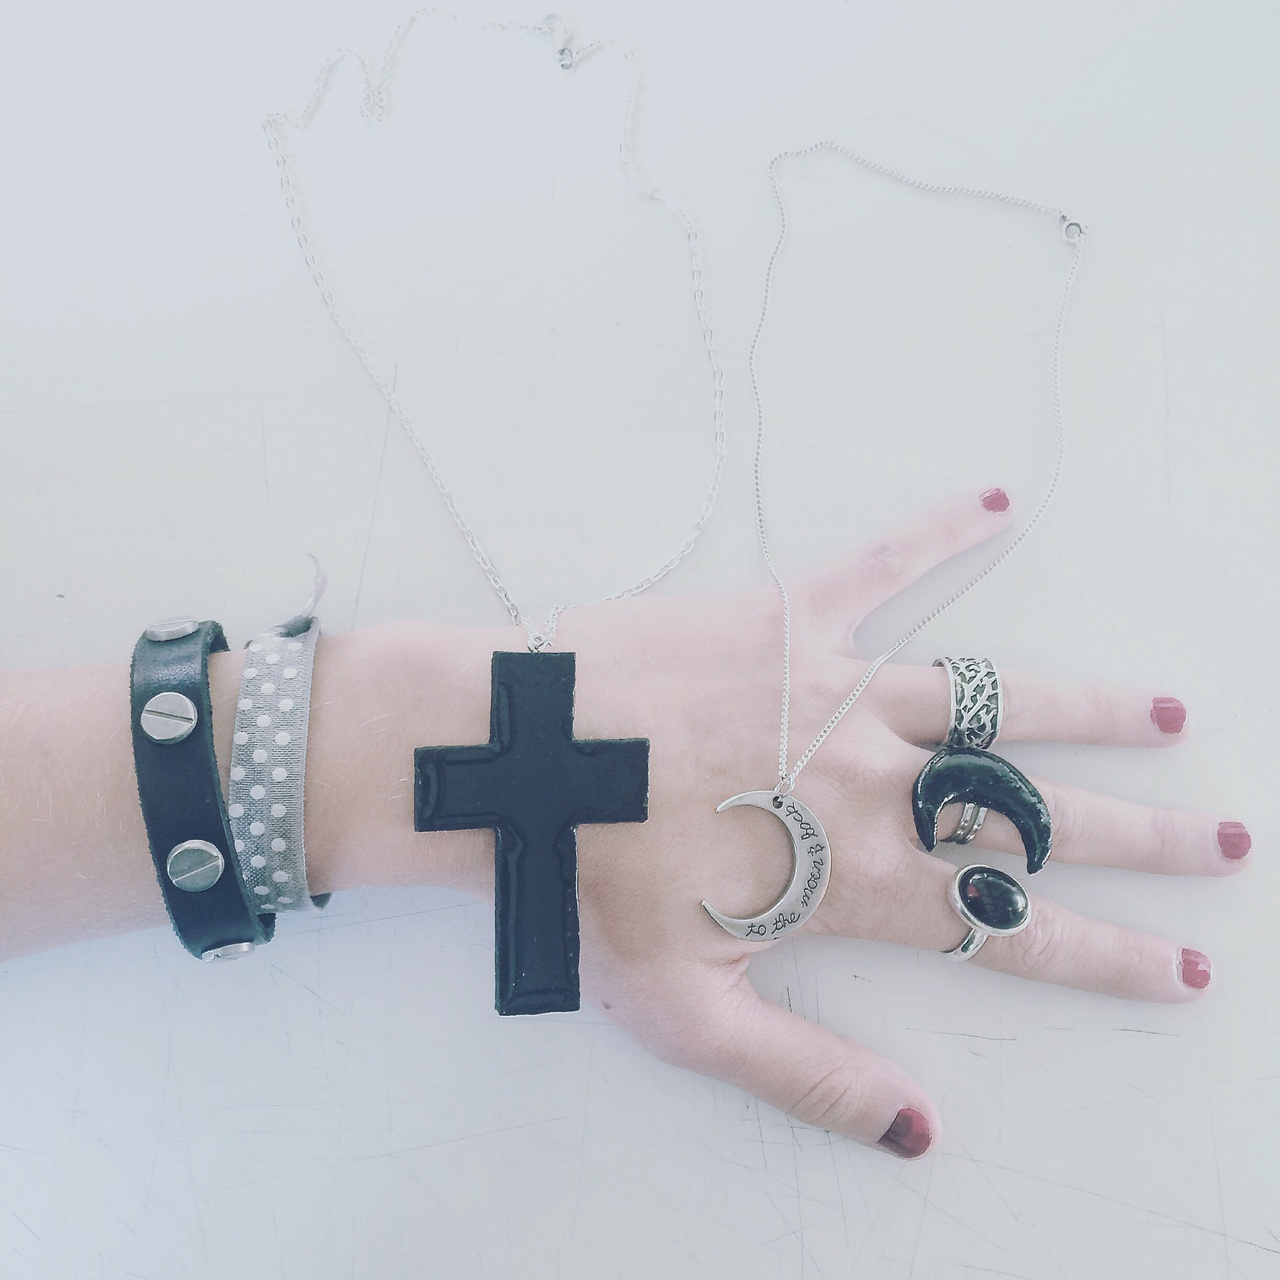 accessories, black, creepy, creepycute, emo, fashion, goth, gothic, grunge, harajuku, jewellery, kawaii, mage, mystic, nails, pale, silver, urban, witchy, nugoth, palegrunge